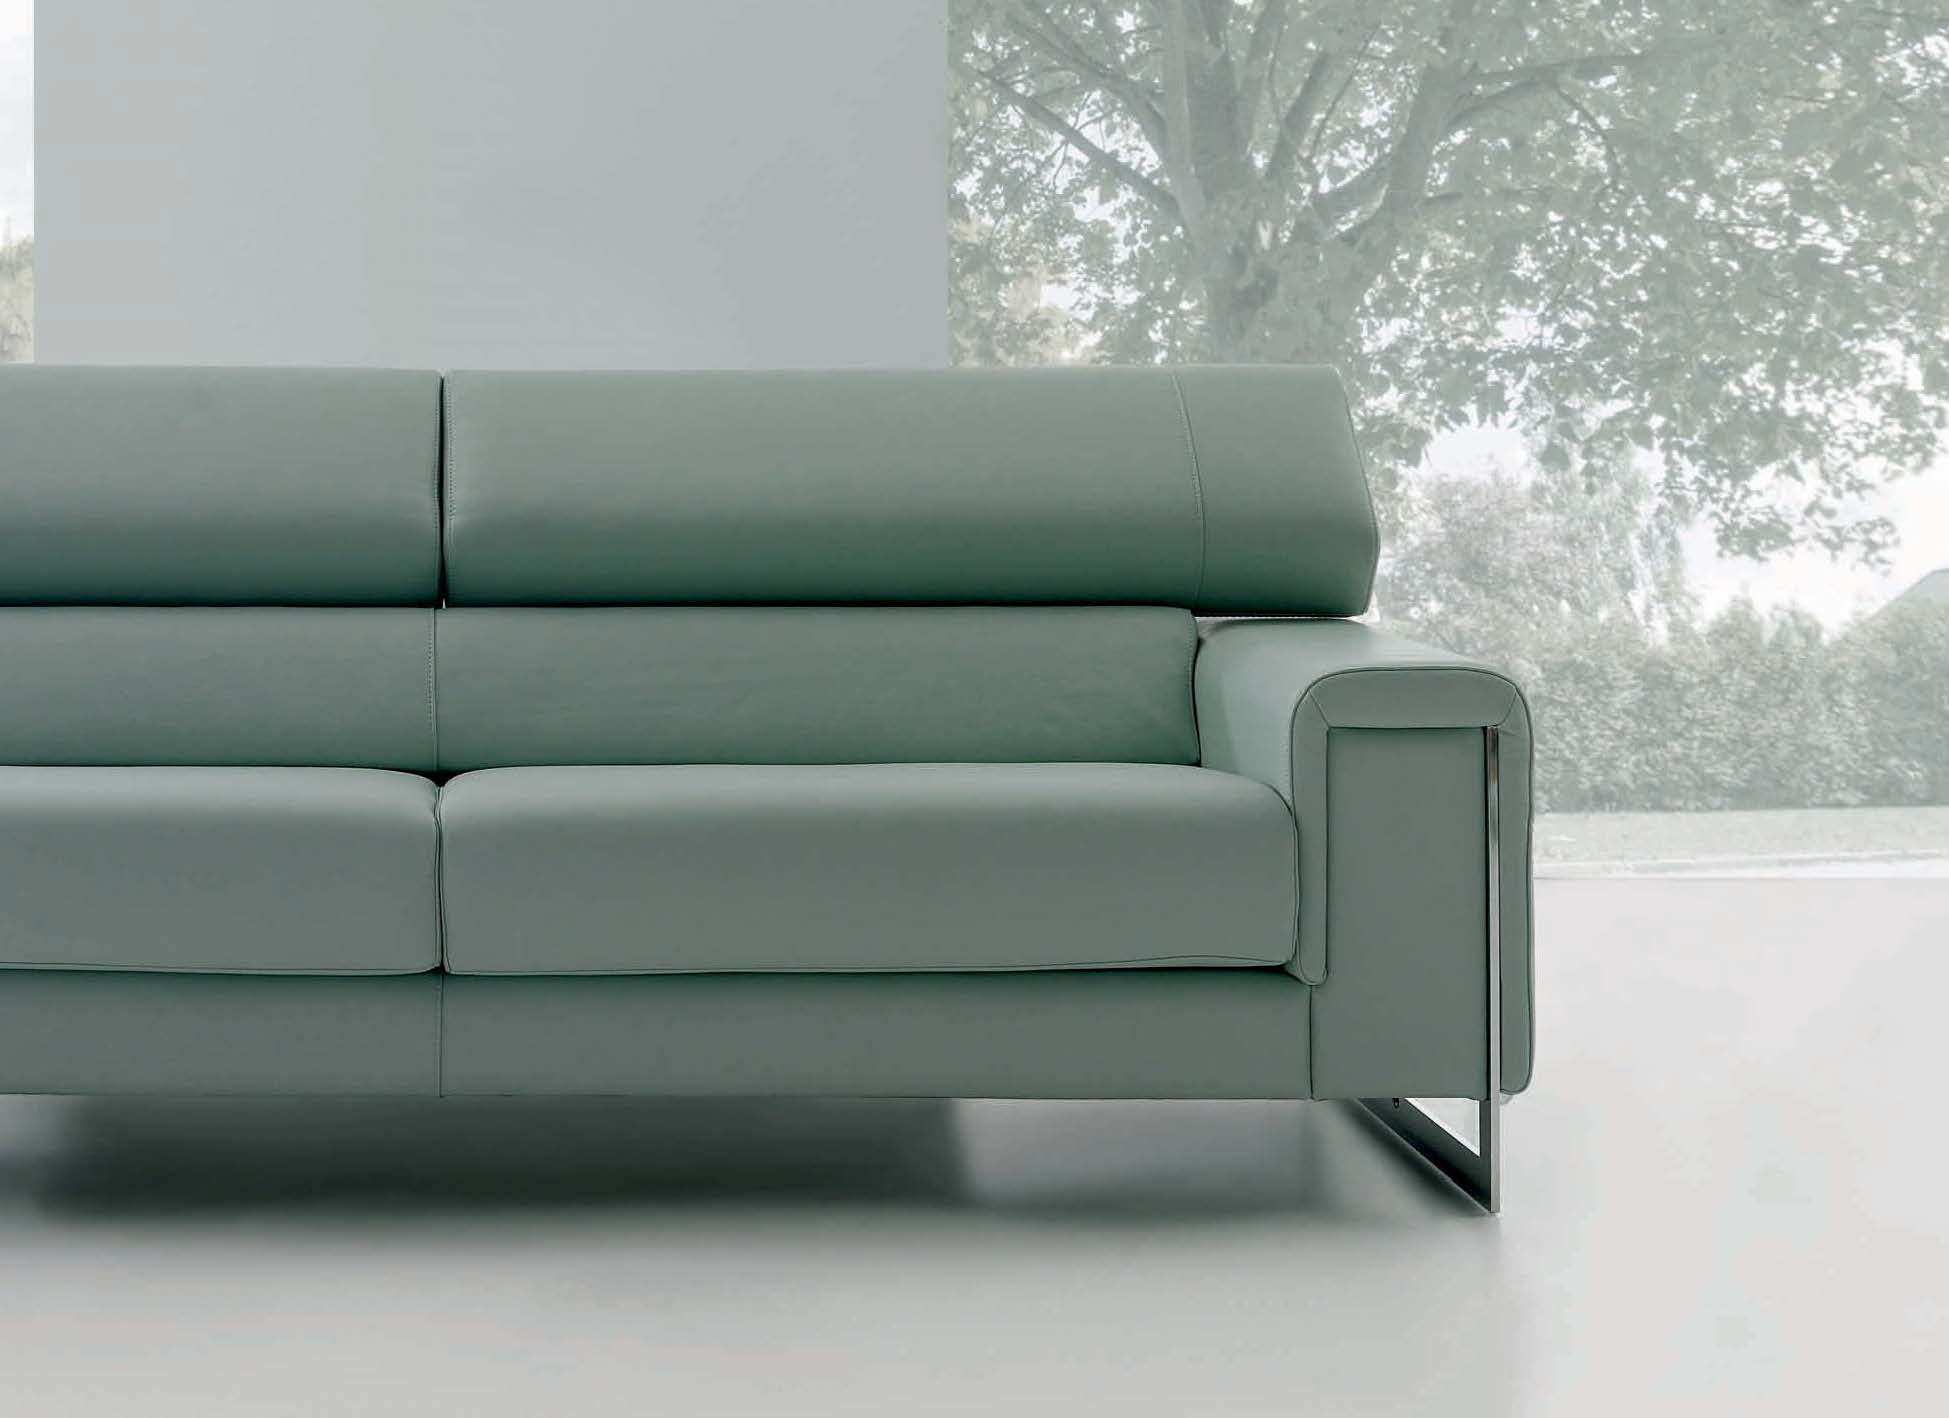 Ormos Sofas Sofas Spain Mueble De Espaa Furniture From Spain With